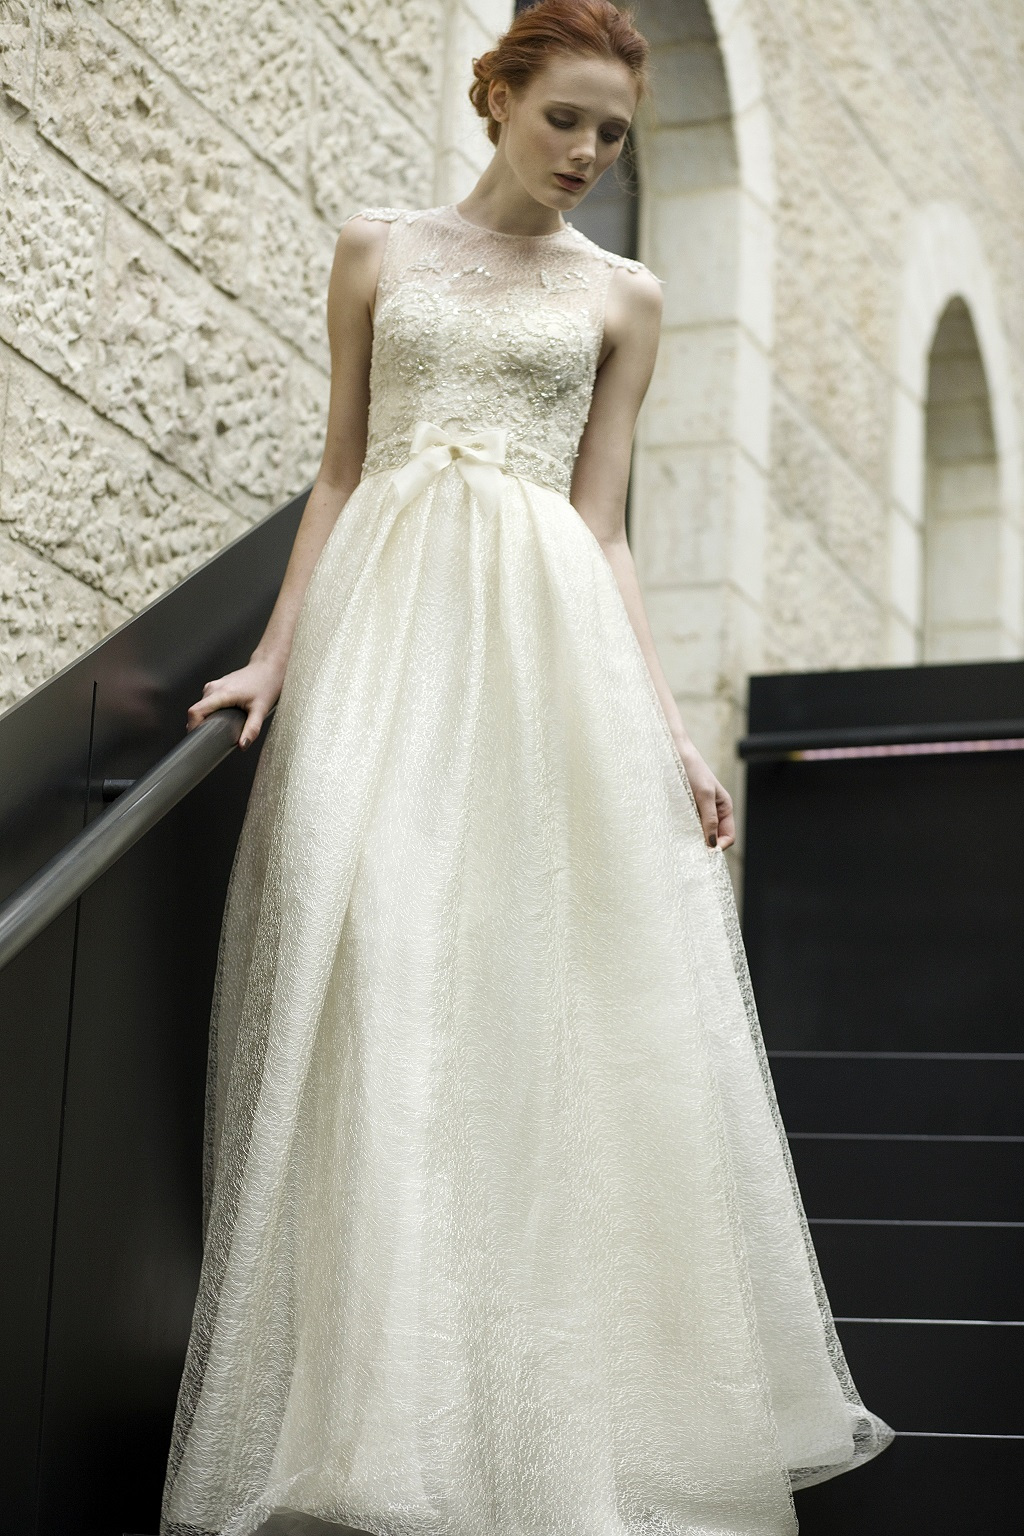 Grace-wedding-dress-by-mira-zwillinger-2014-bridal.full